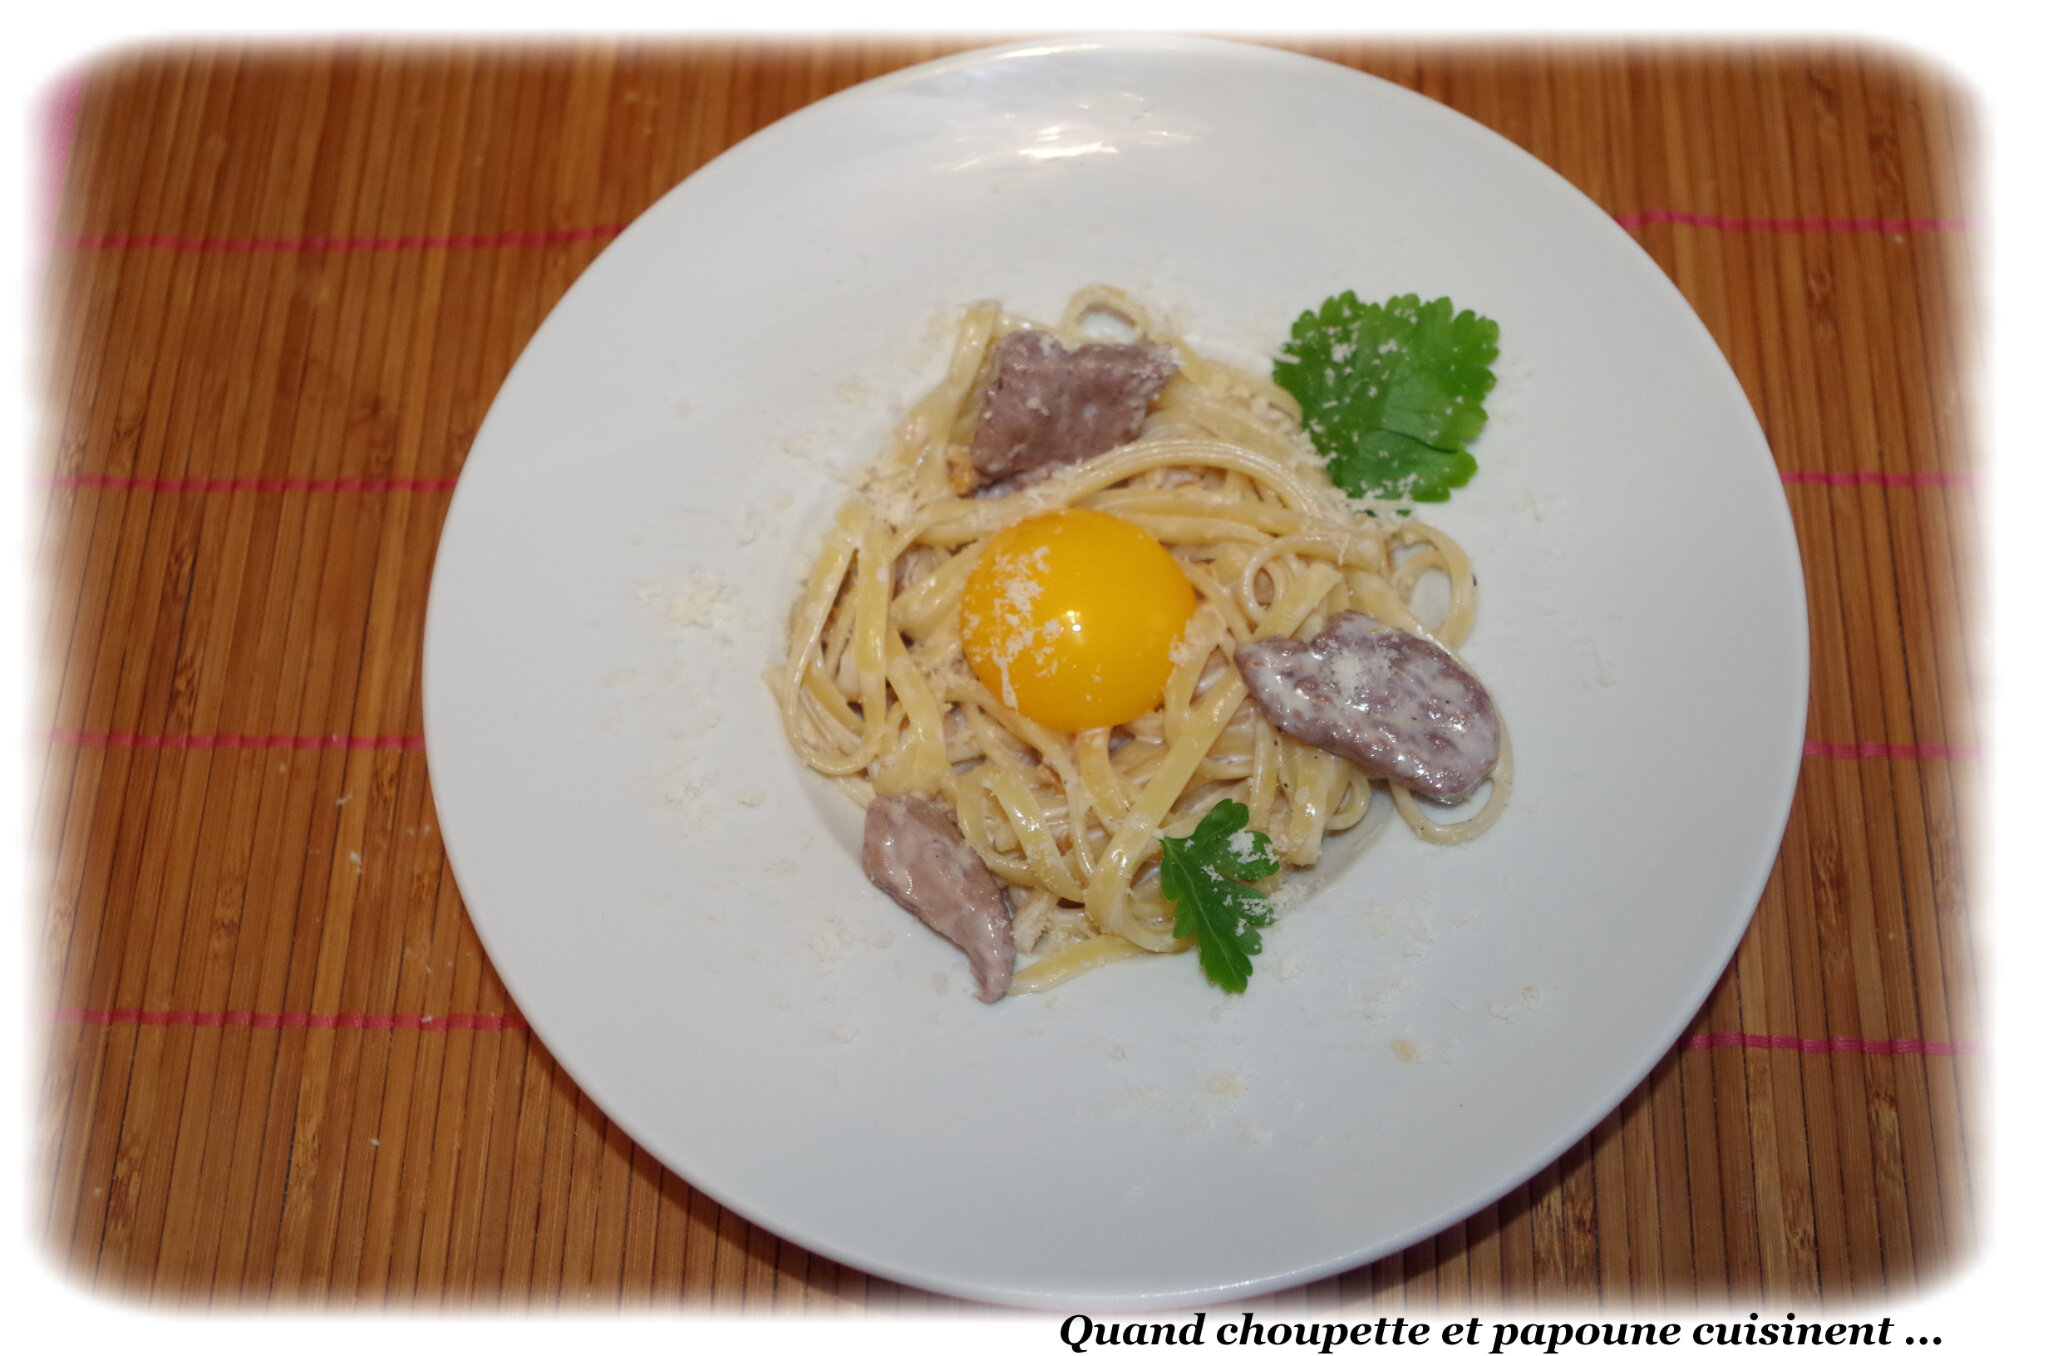 Filet de canard en carbonara quand choupette et papoune cuisinent - Difference entre filet et magret de canard ...